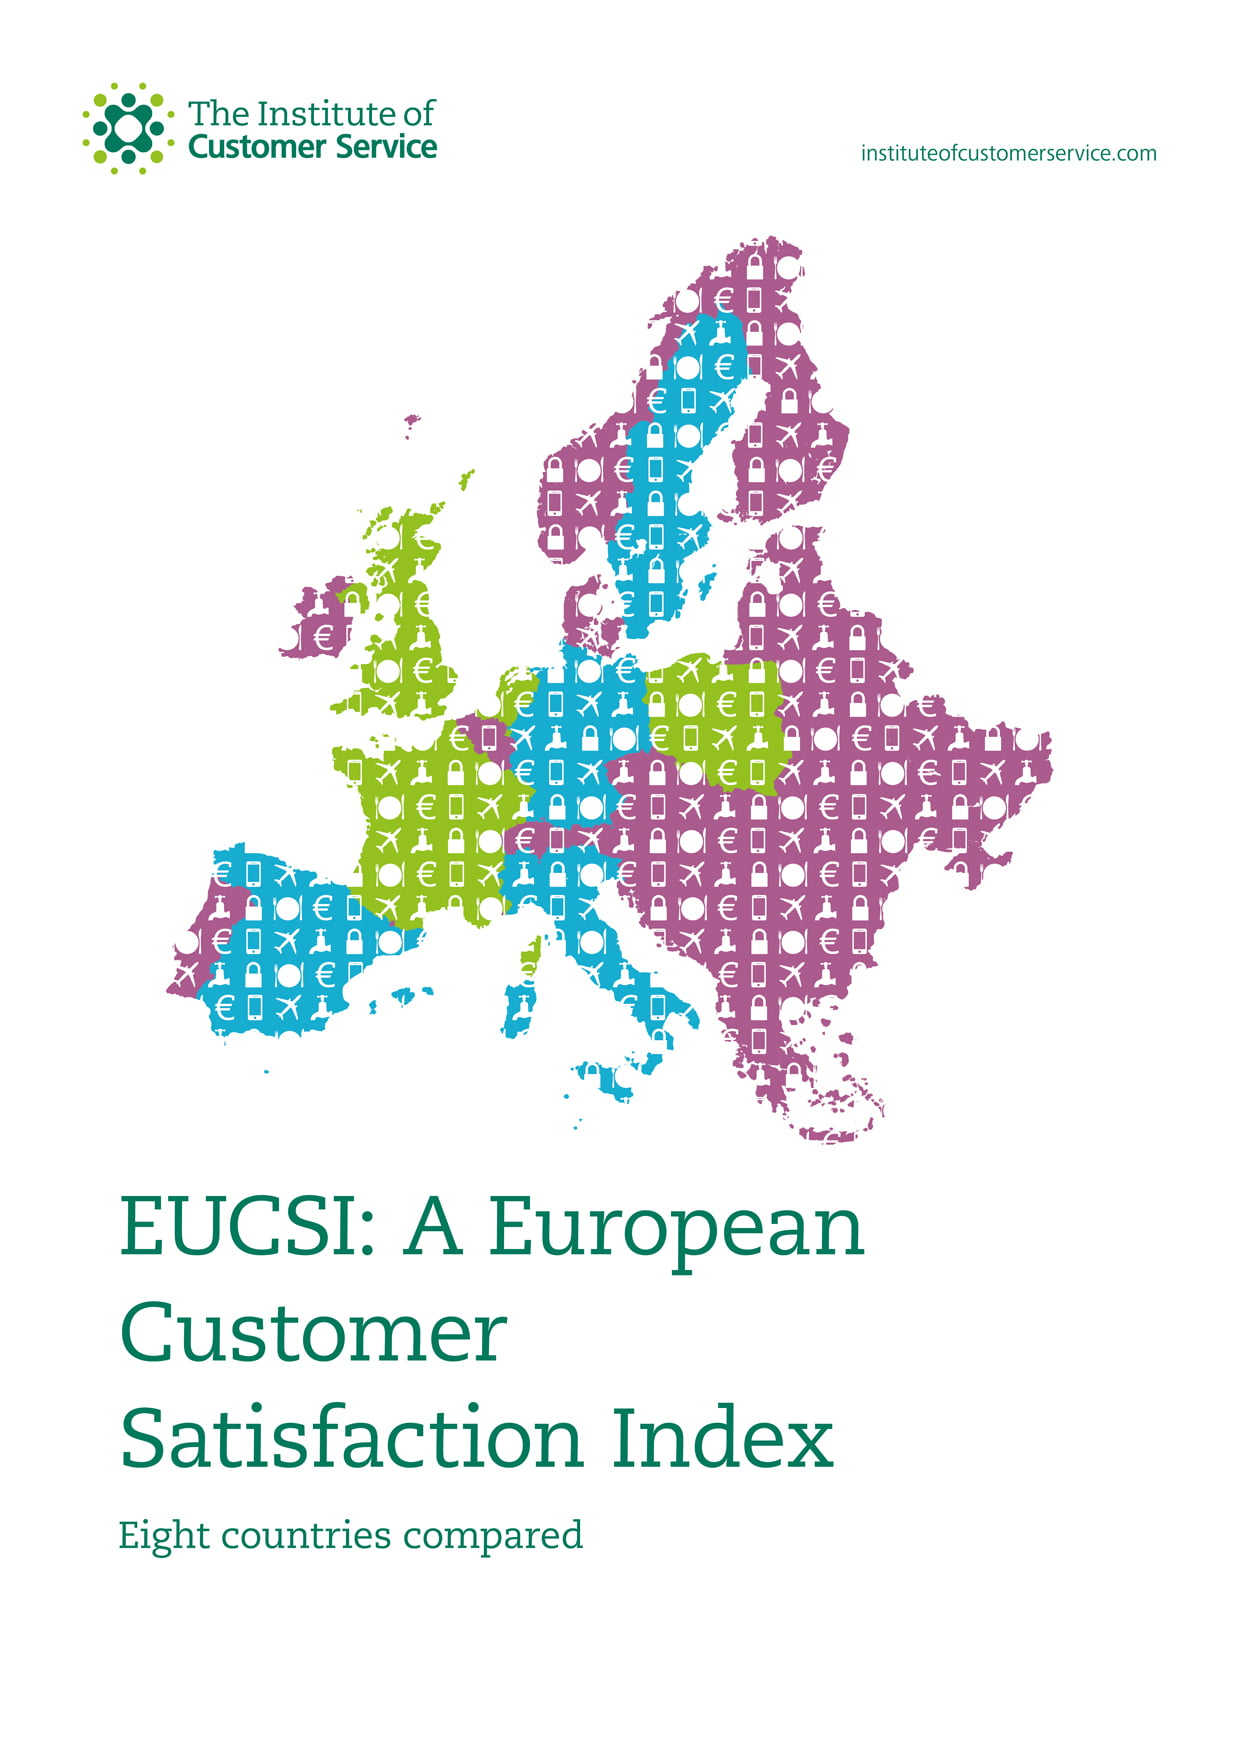 EUCSI: A European Customer Satisfaction Index – Eight Countries Compared